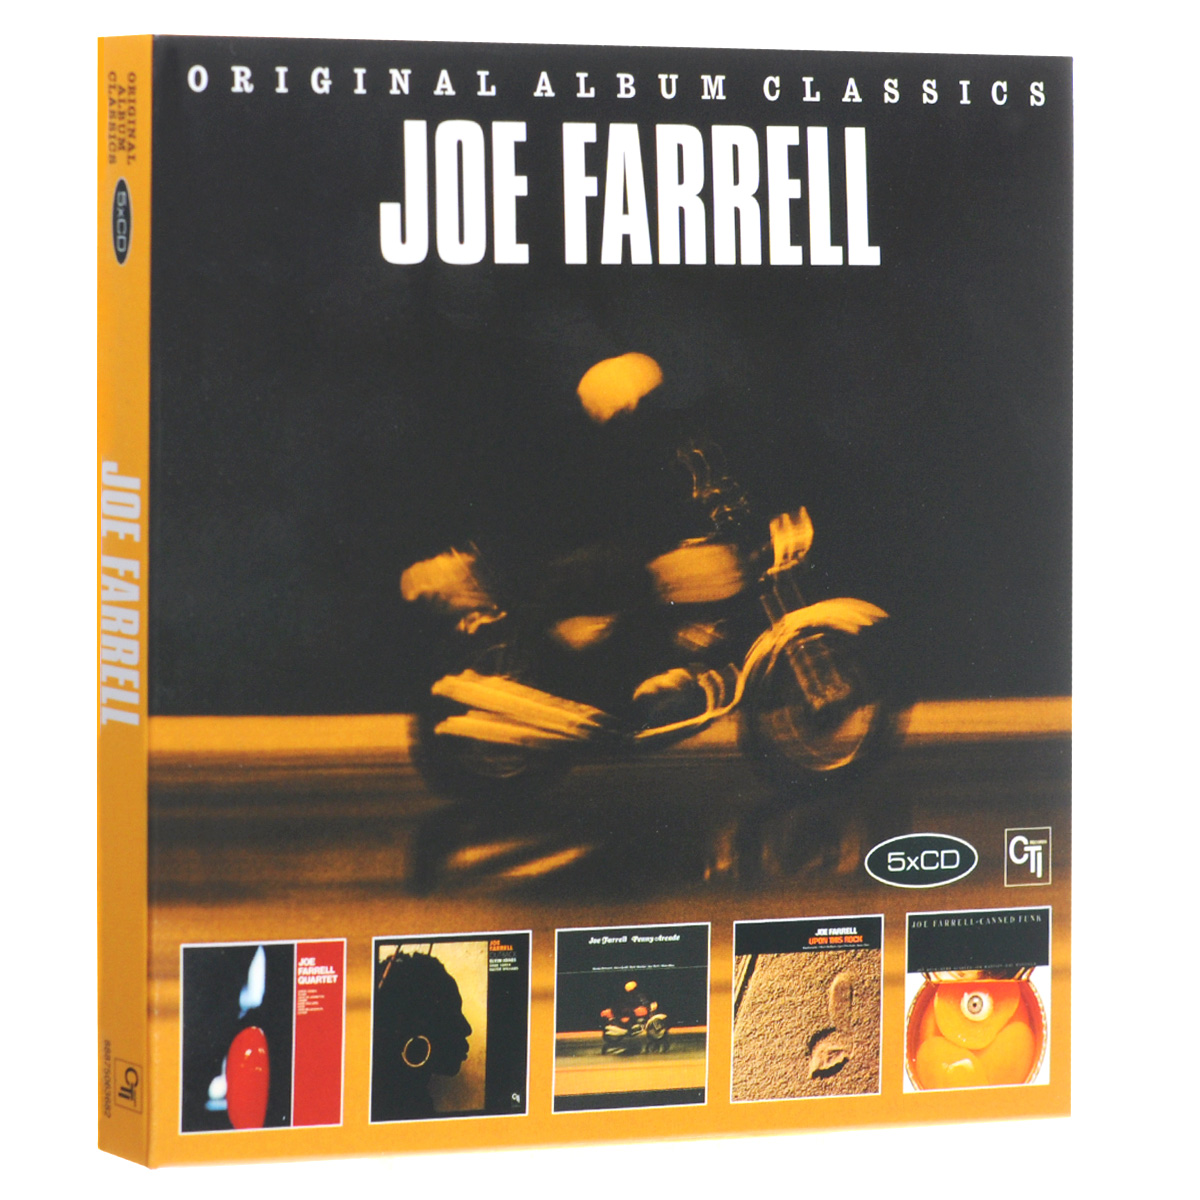 Joe Farrell. Original Album Classics (5 CD)